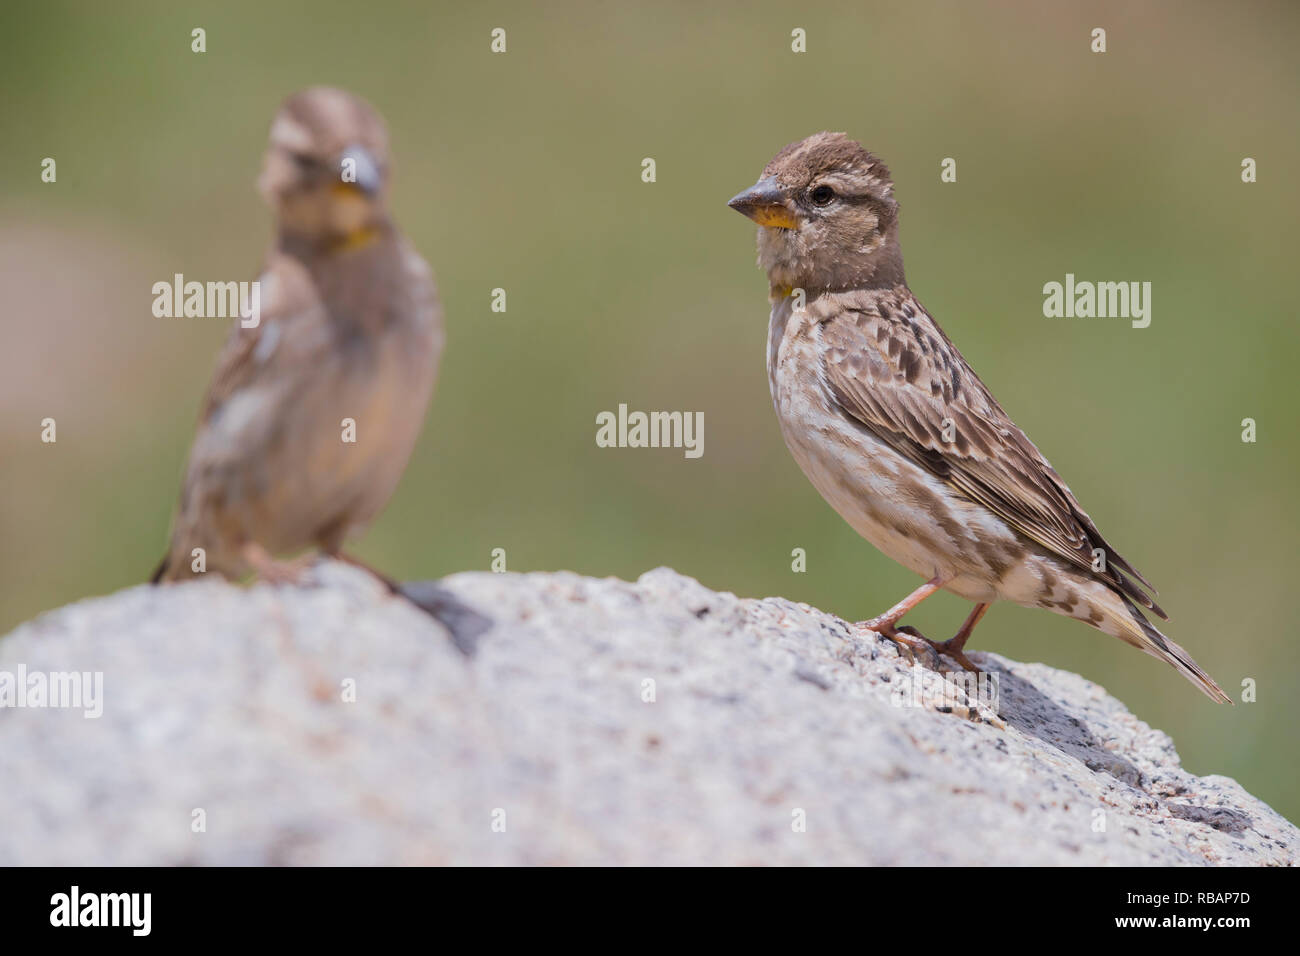 Rock Sparrow (Petronia petronia barbara), two adults standing on a stone - Stock Image